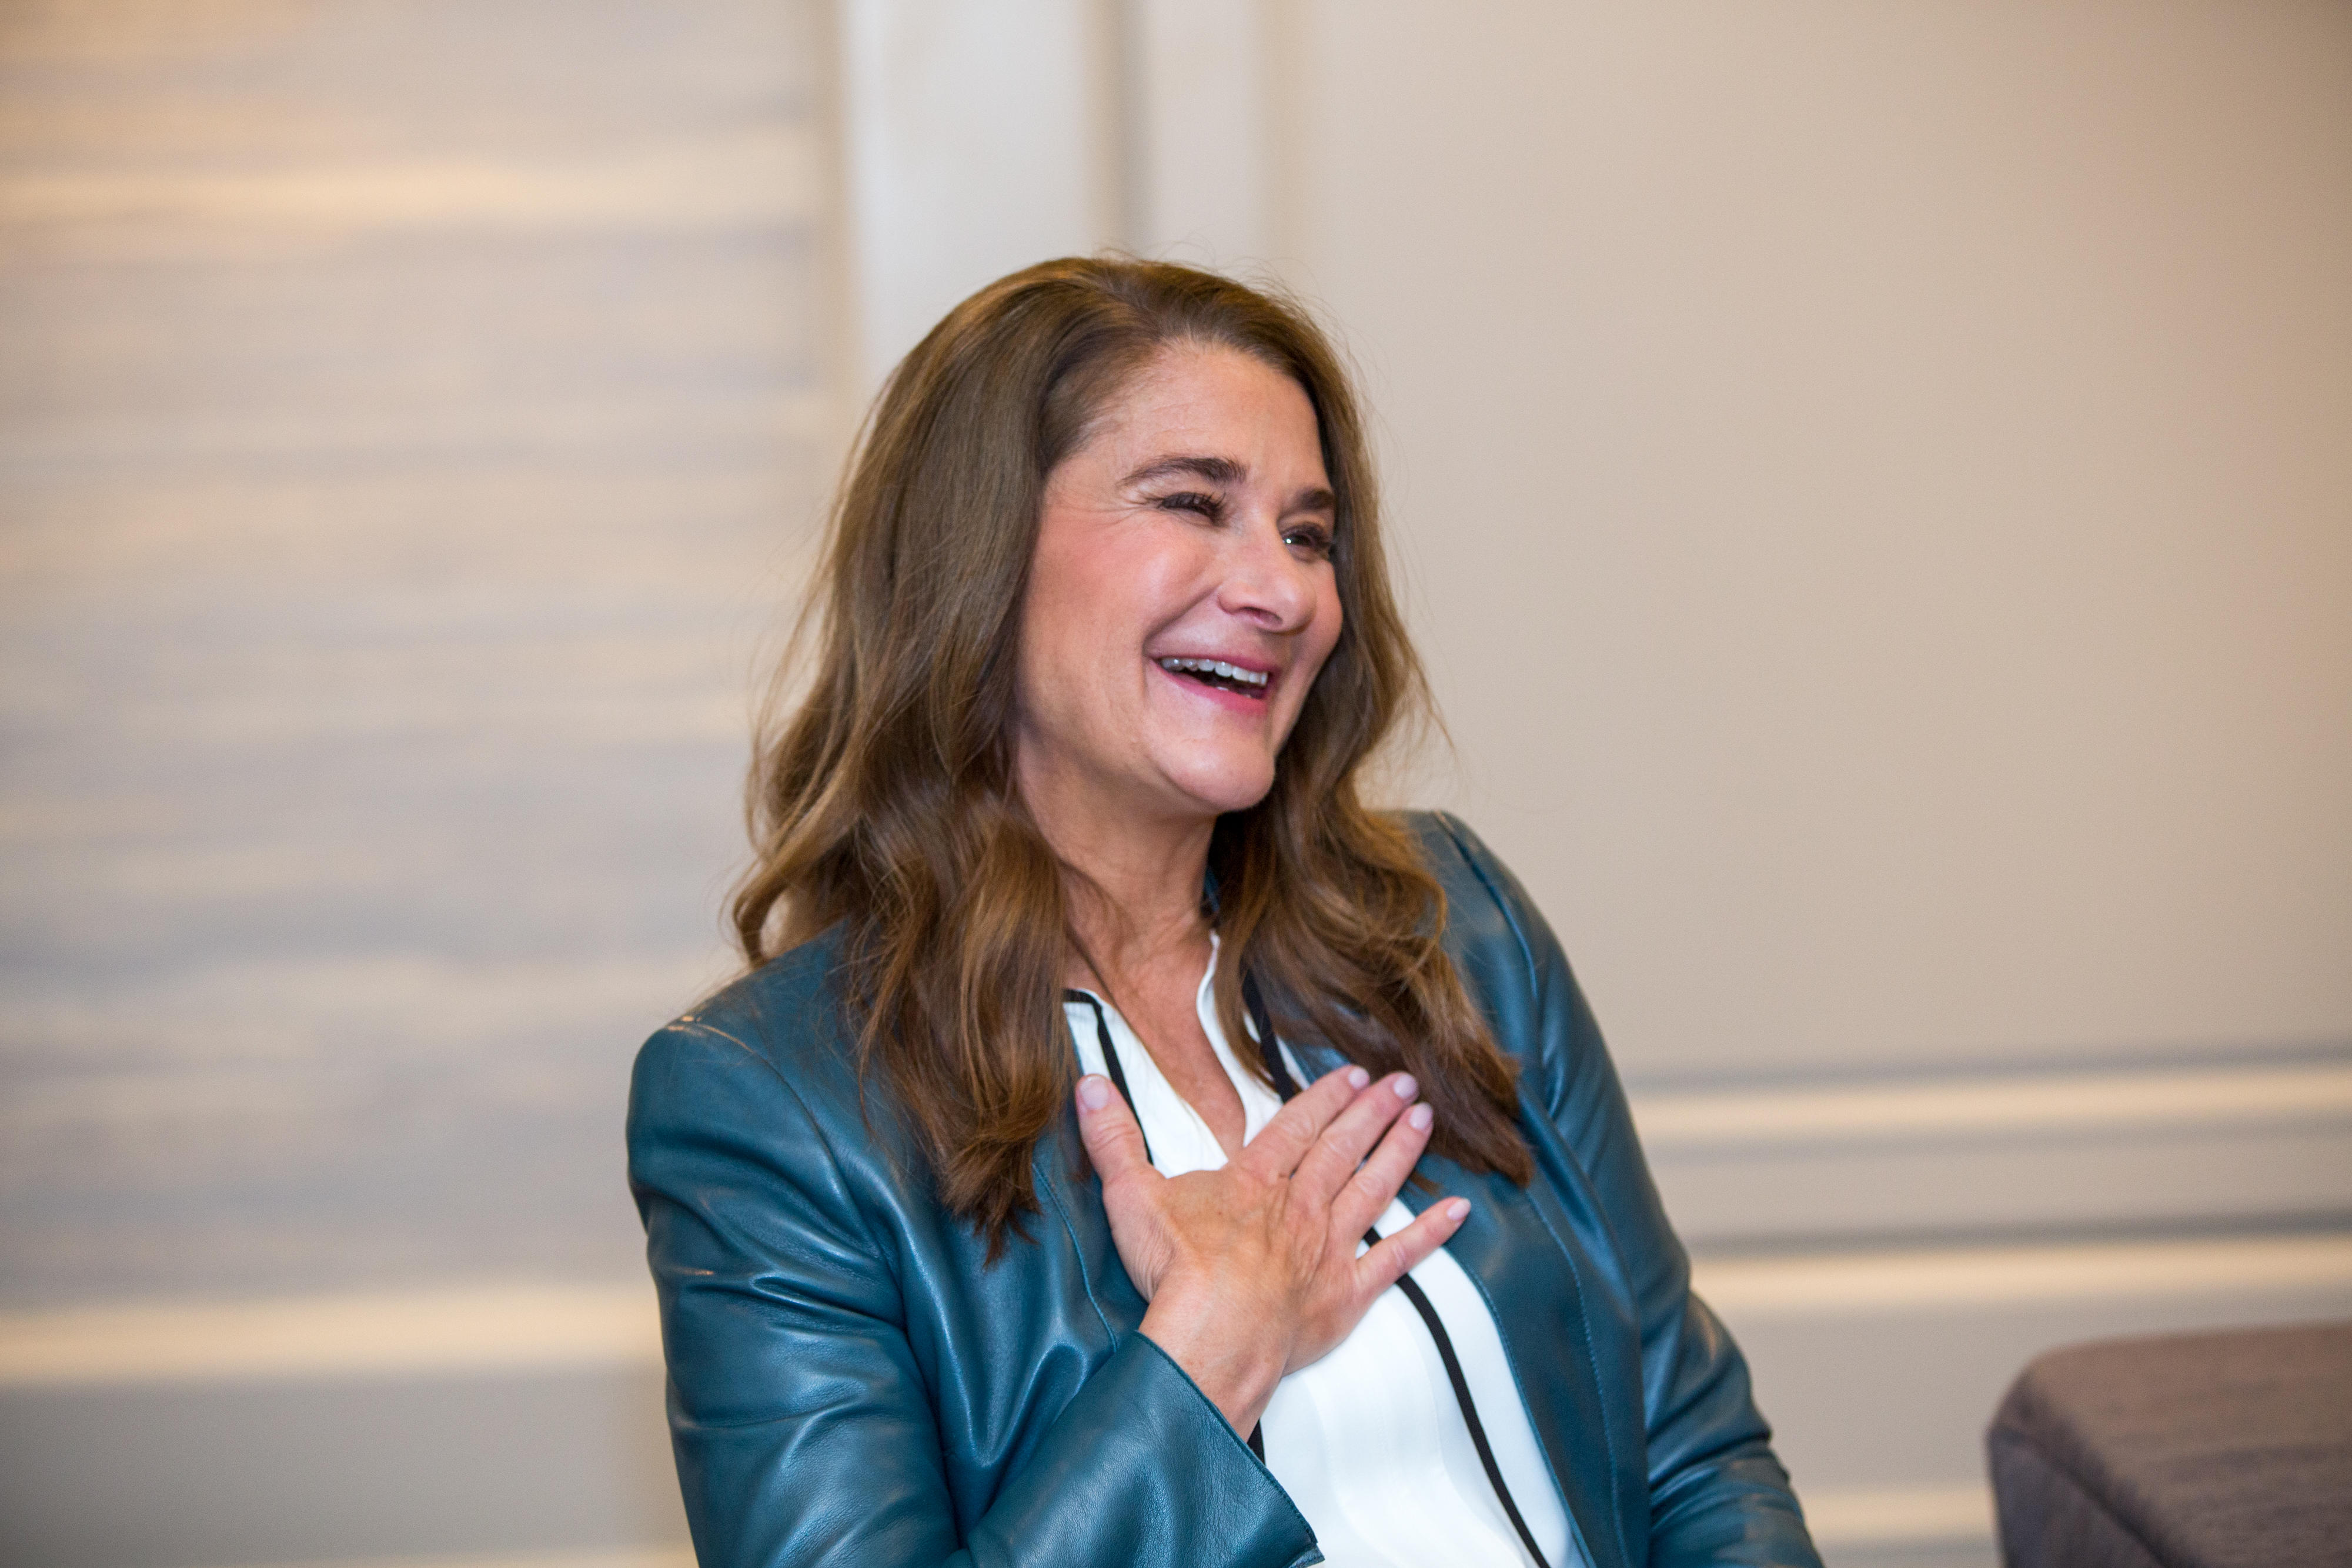 Melinda Gates Says Us Is A Long Way From Equality For Women Cnet